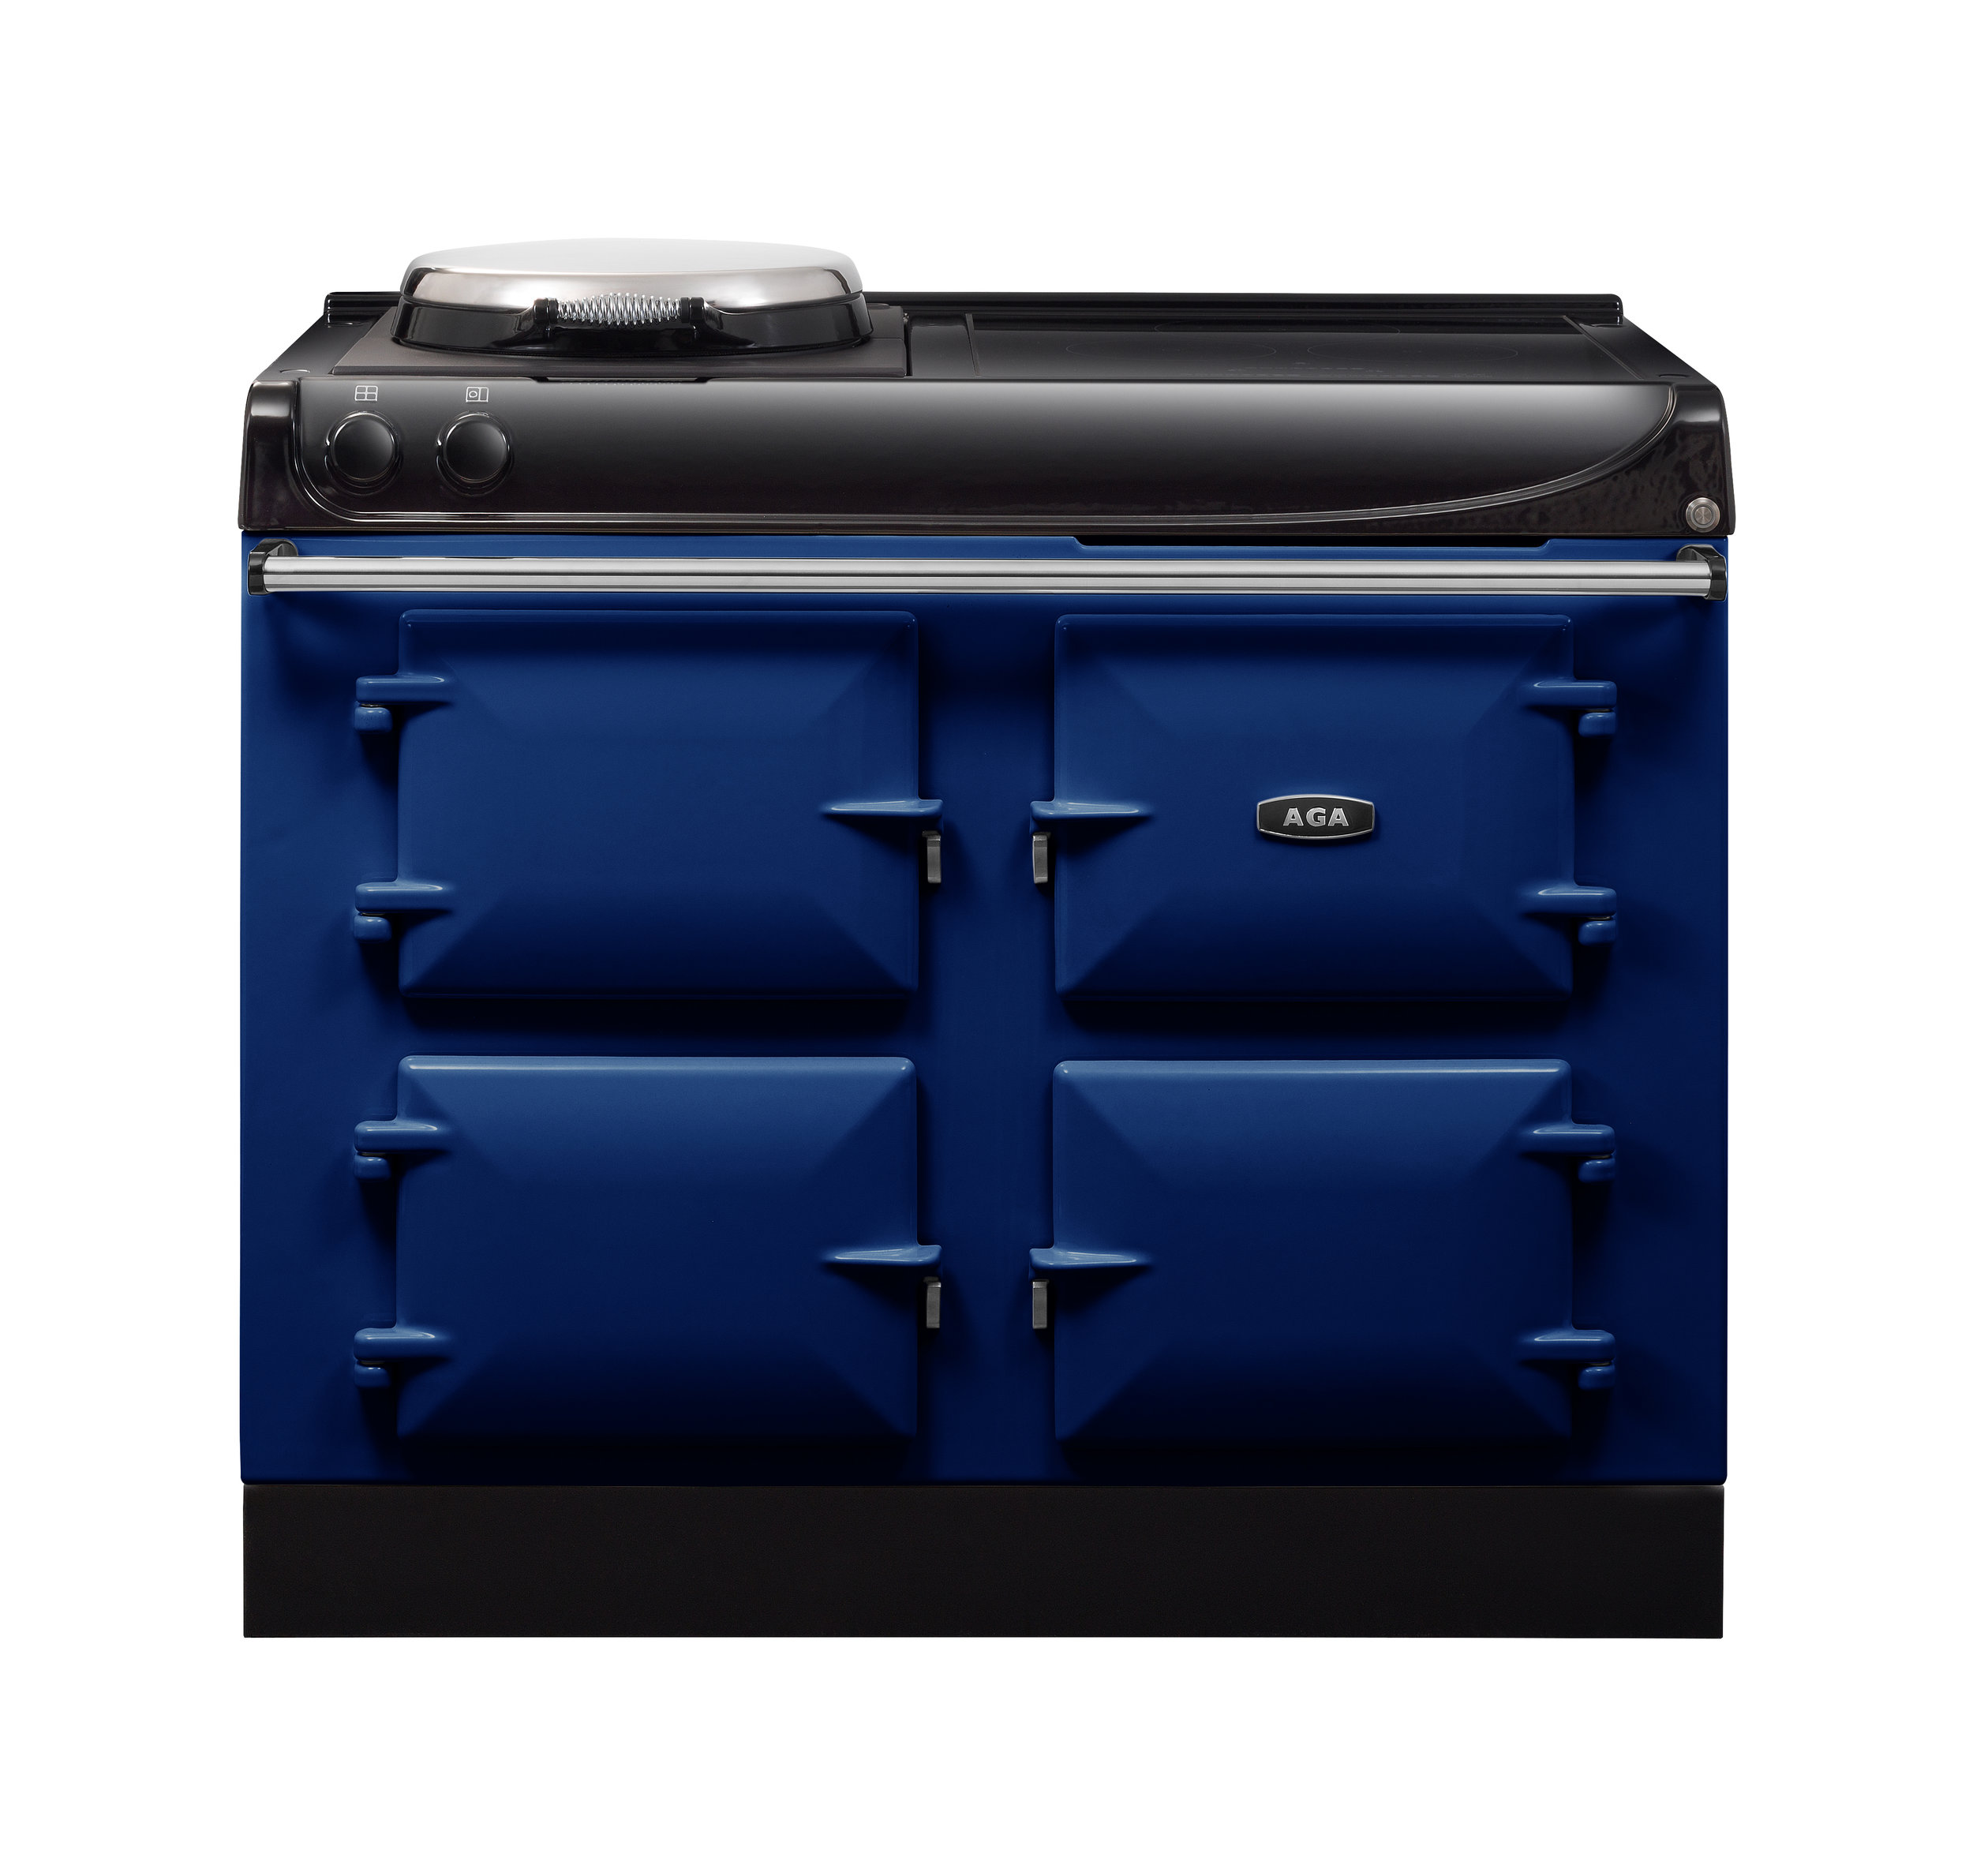 AGA 3 Series 110_Dark Blue.jpg